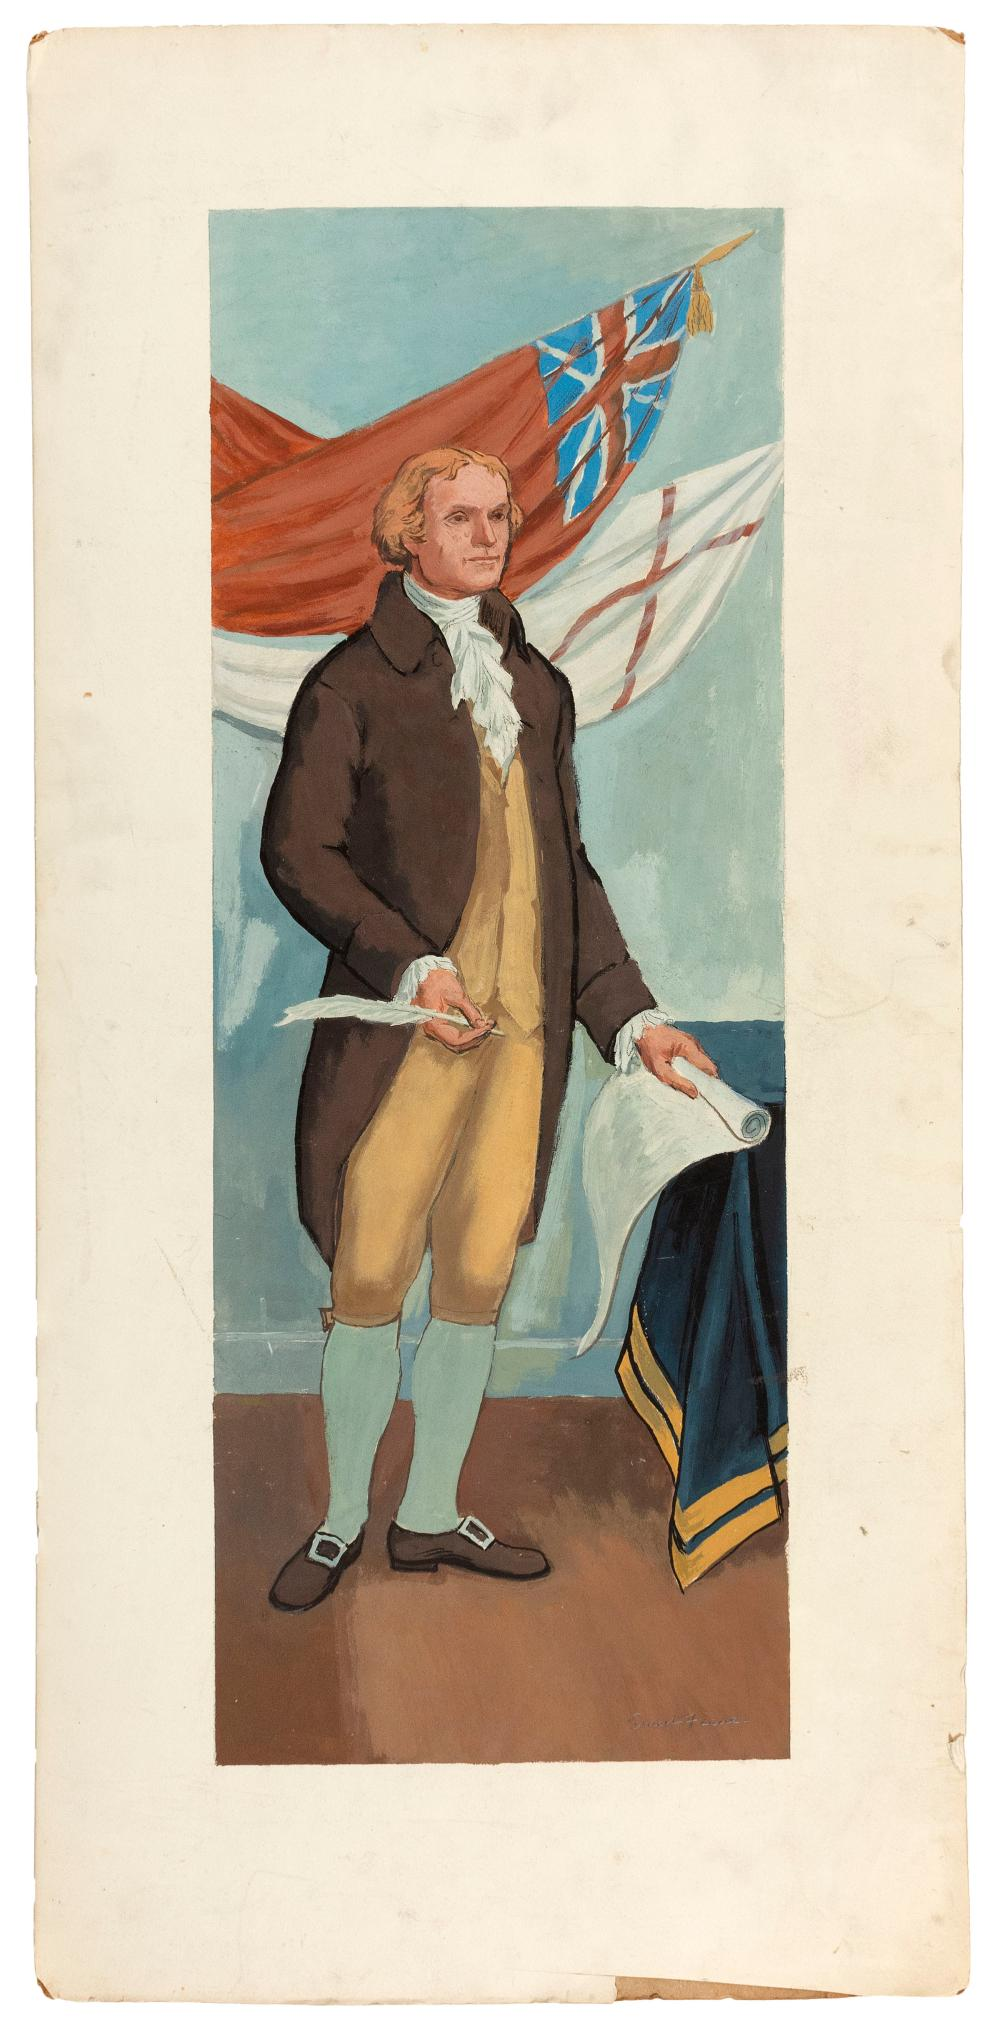 """ERNEST FIENE, New York/Germany, 1894-1965, Study for portrait mural of Thomas Jefferson., Casein on cold pressed board, image 26.13""""..."""